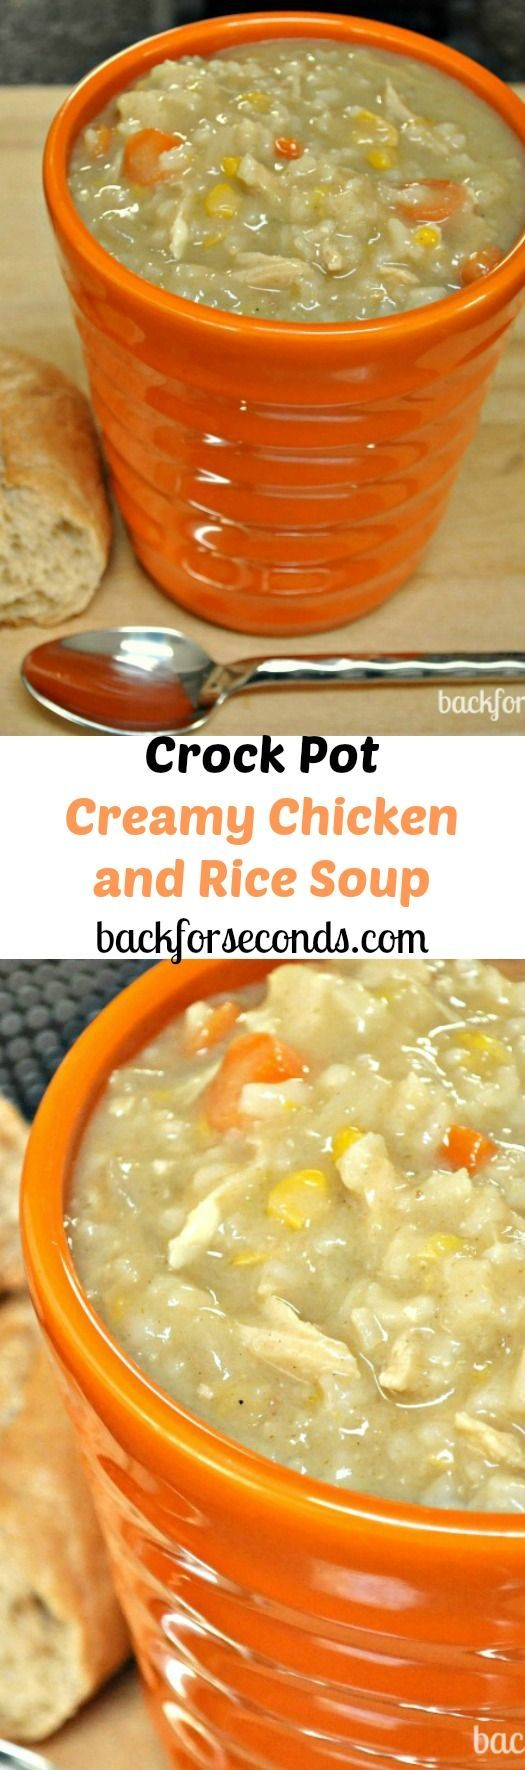 Creamy Chicken and Rice Soup ~ Made simple, in the Crock Pot!